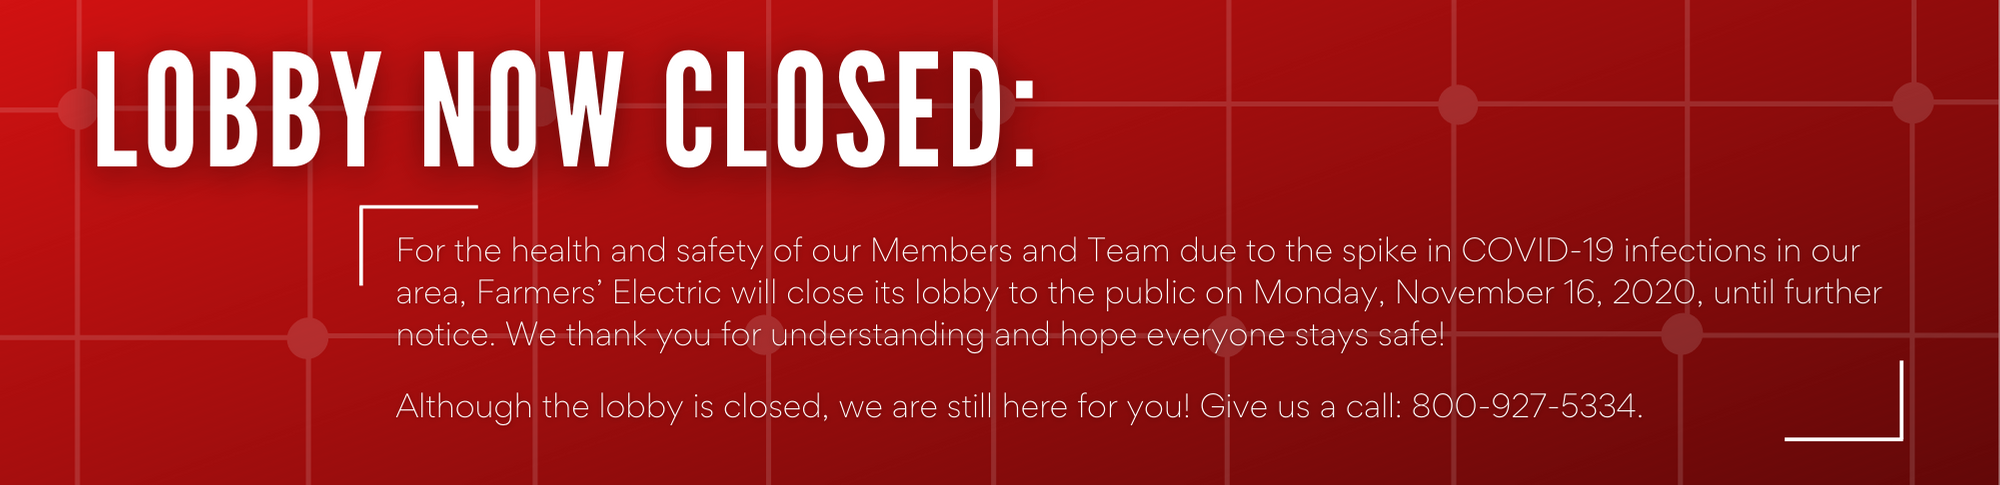 Lobby is now closed for precautionary health and safety measures